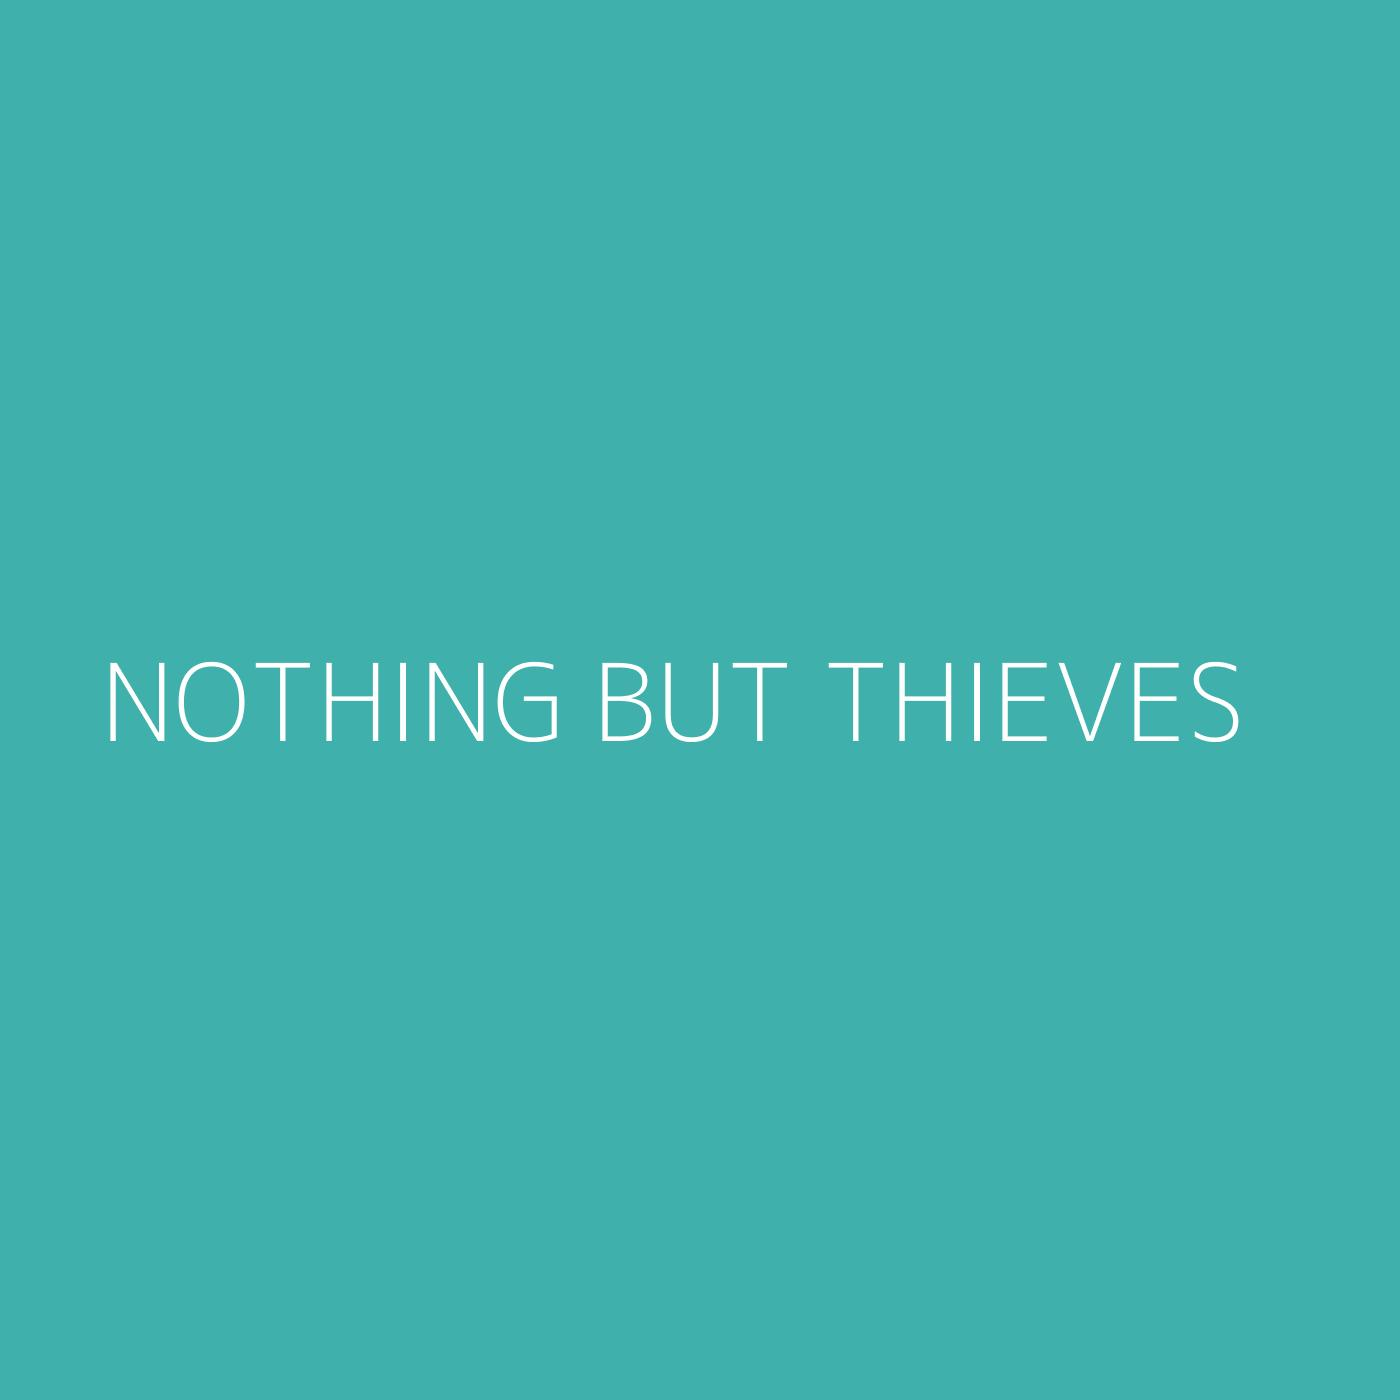 Nothing But Thieves Playlist Artwork